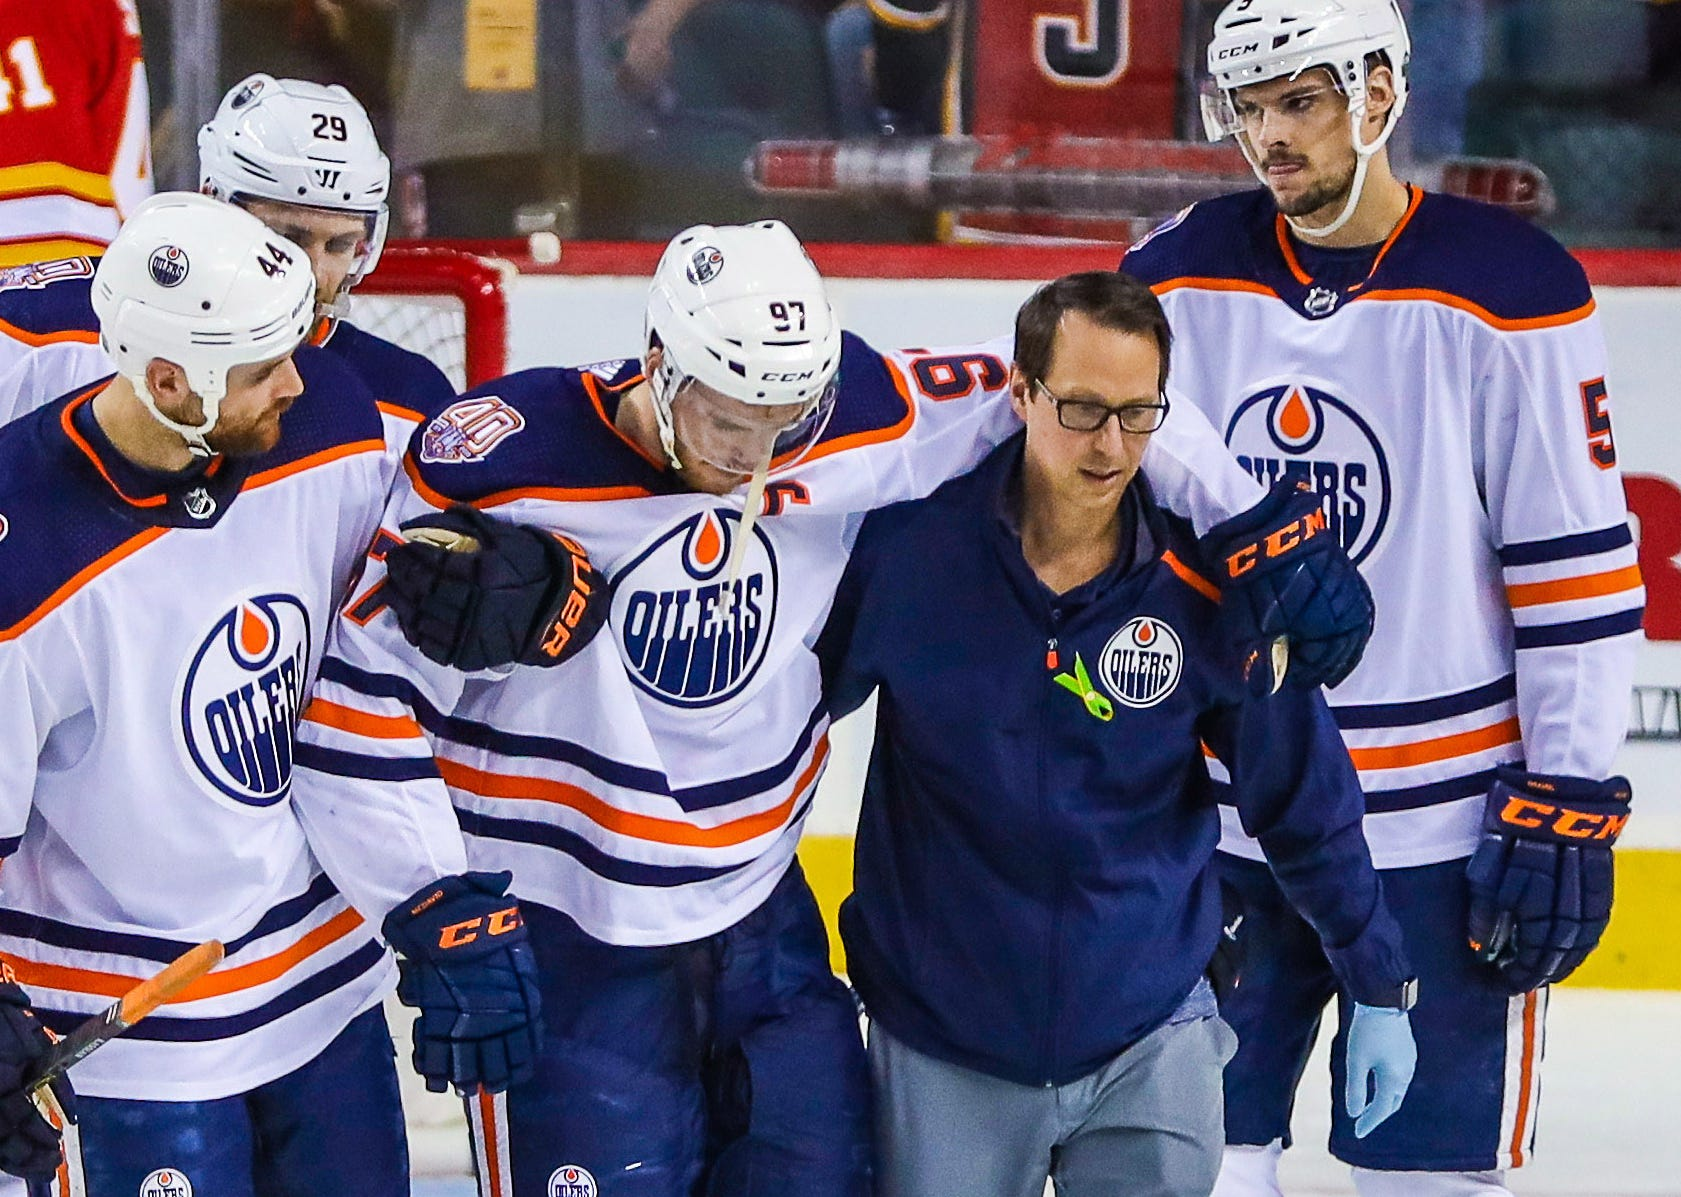 Edmonton Oilers center Connor McDavid is helped off the ice during the second period against the Calgary Flames.